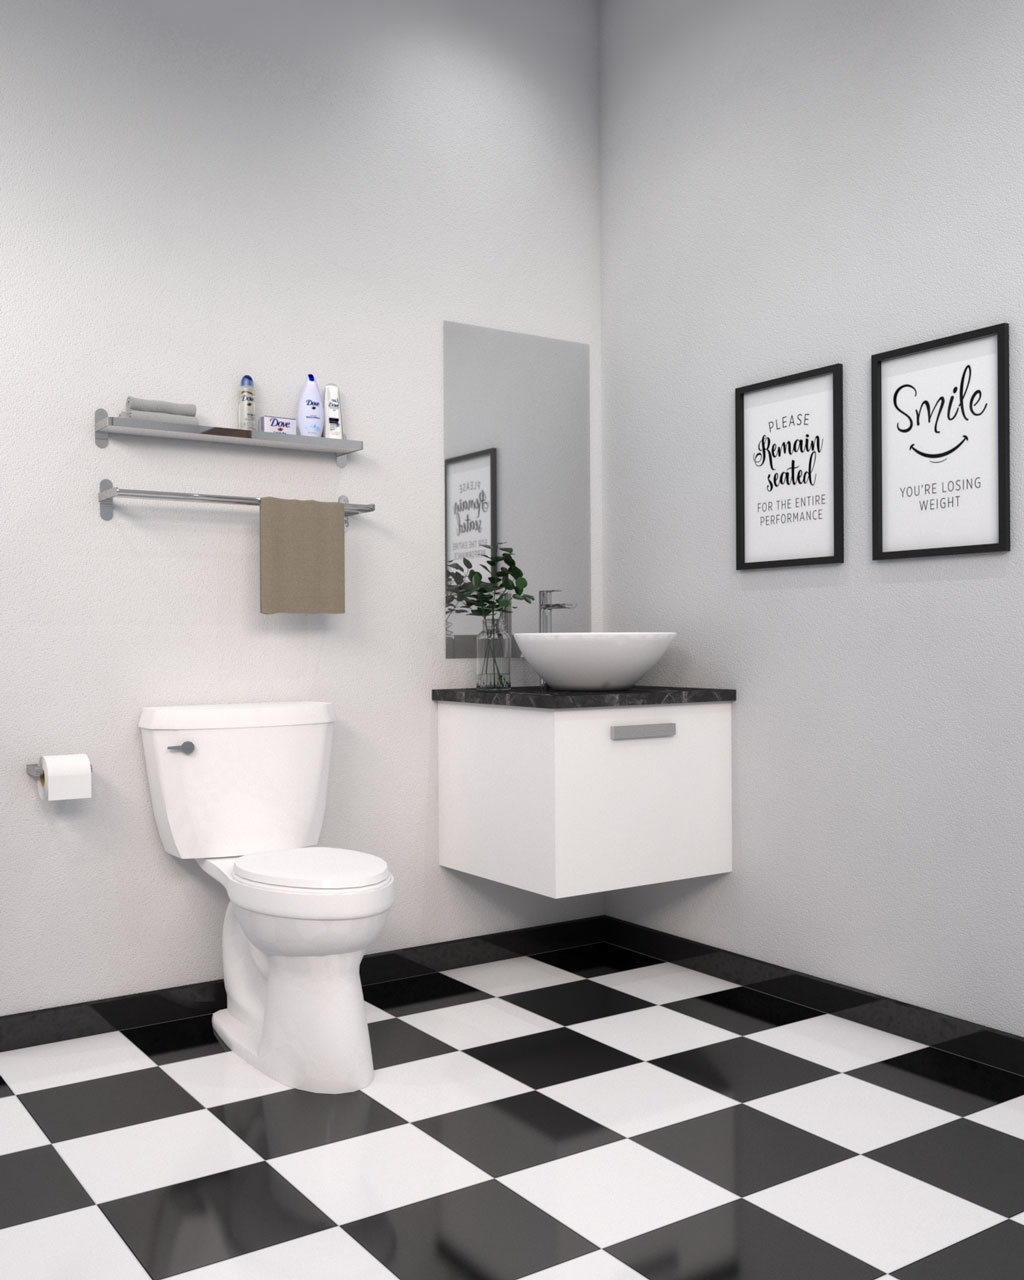 Black and white tile with white walls in bathroom